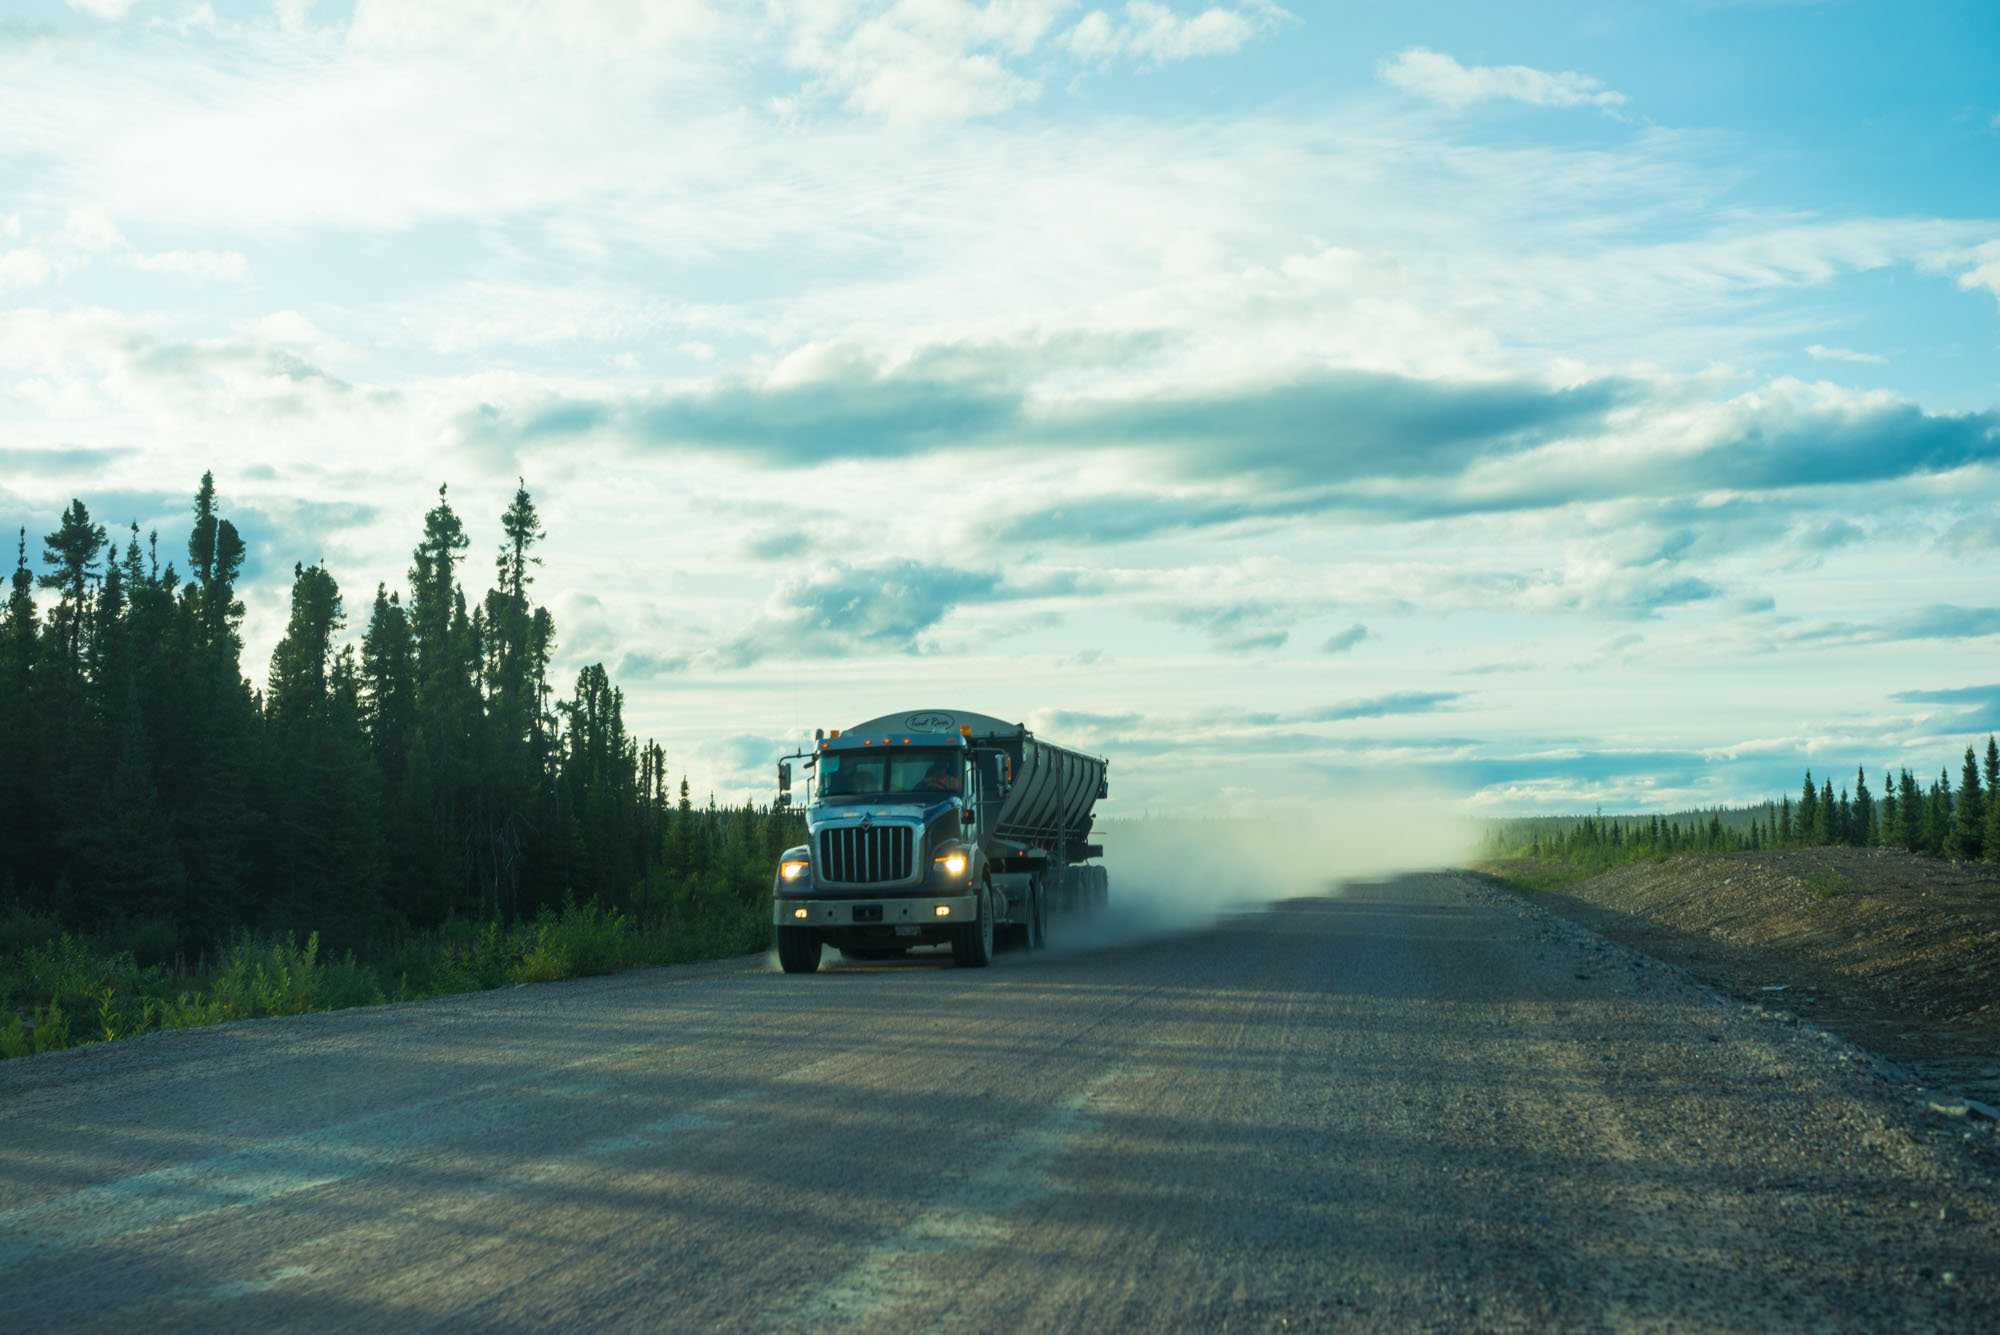 Construction vehicles were the only other people we would see on the Trans Labrador HWY